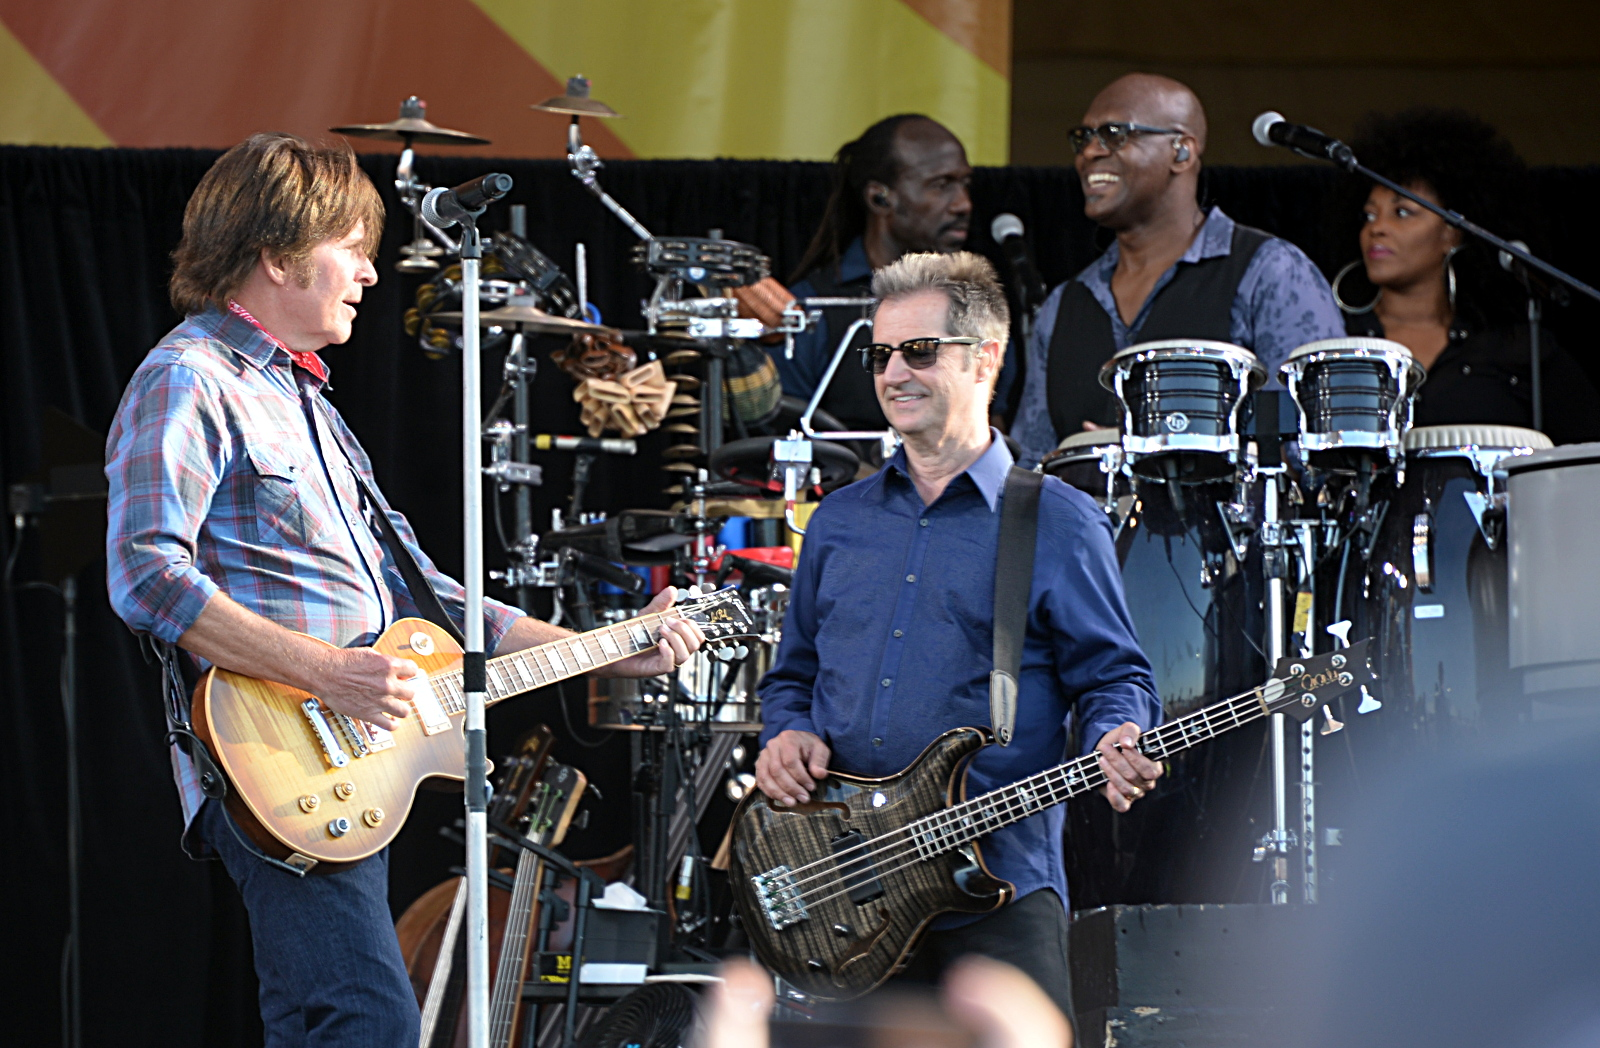 John Fogarty with Garry Tallent and the E Street Band